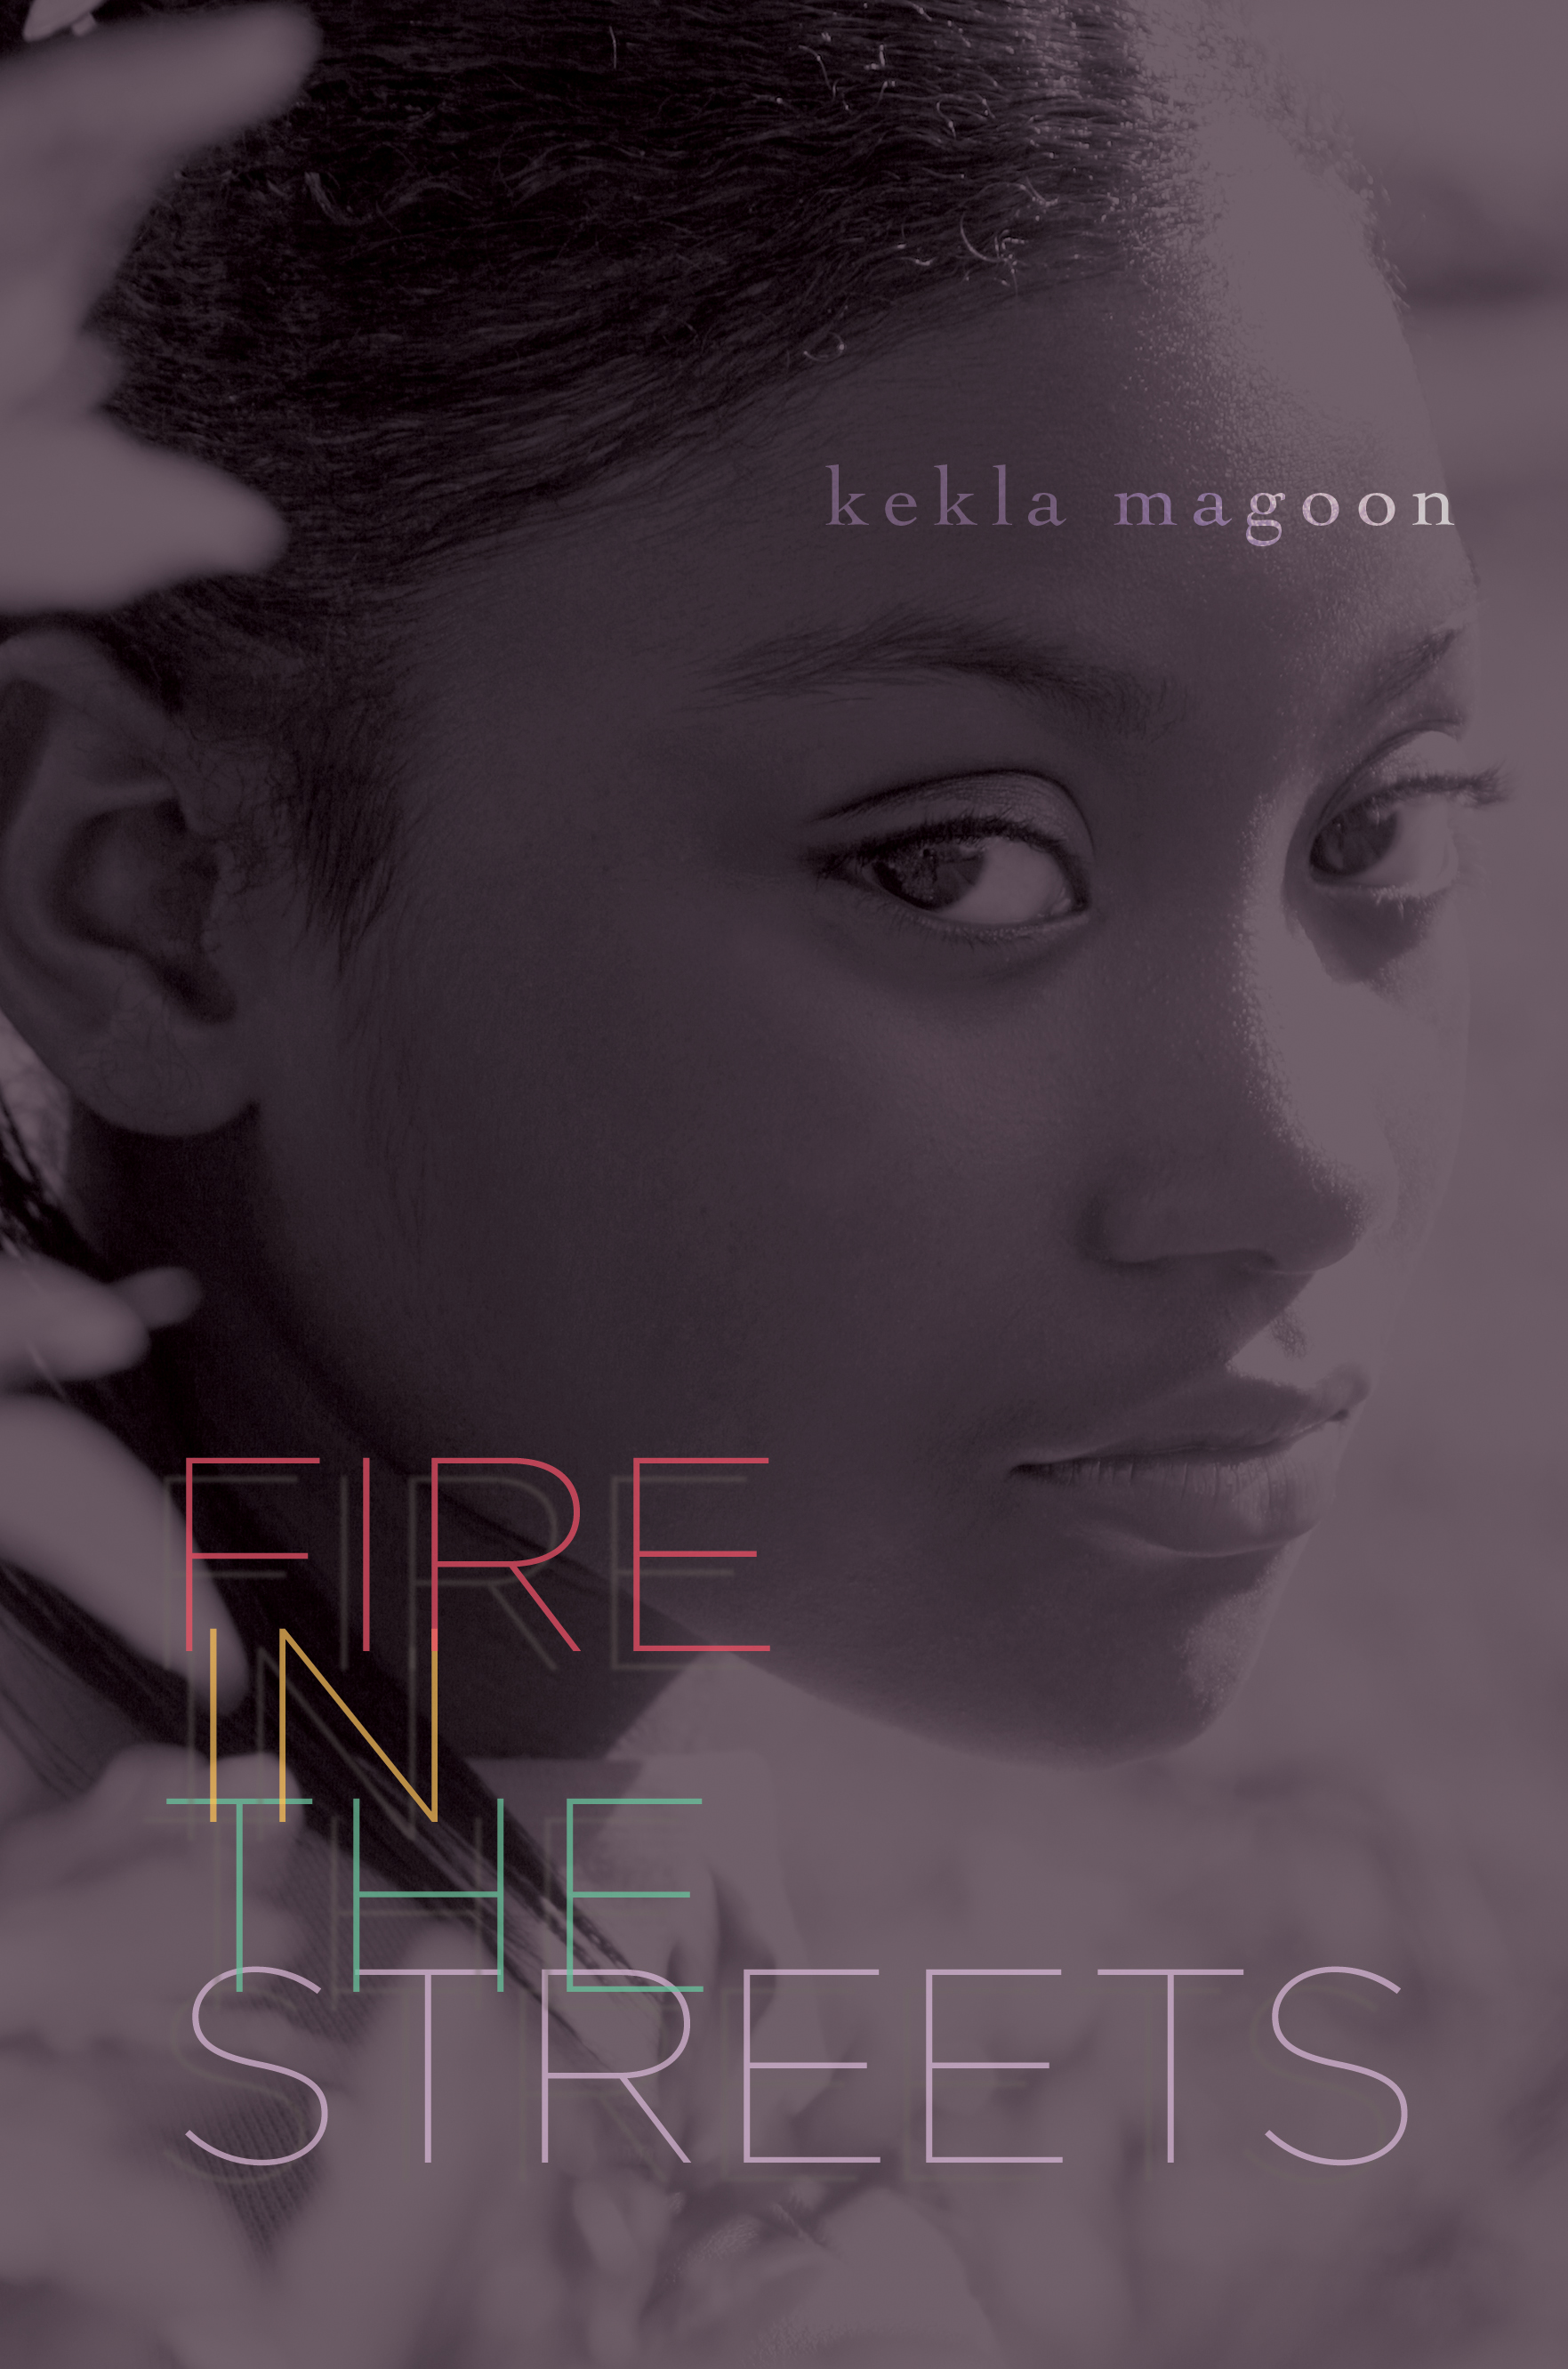 fire in the streets kekla magoon fire in the streetss cover ldquo